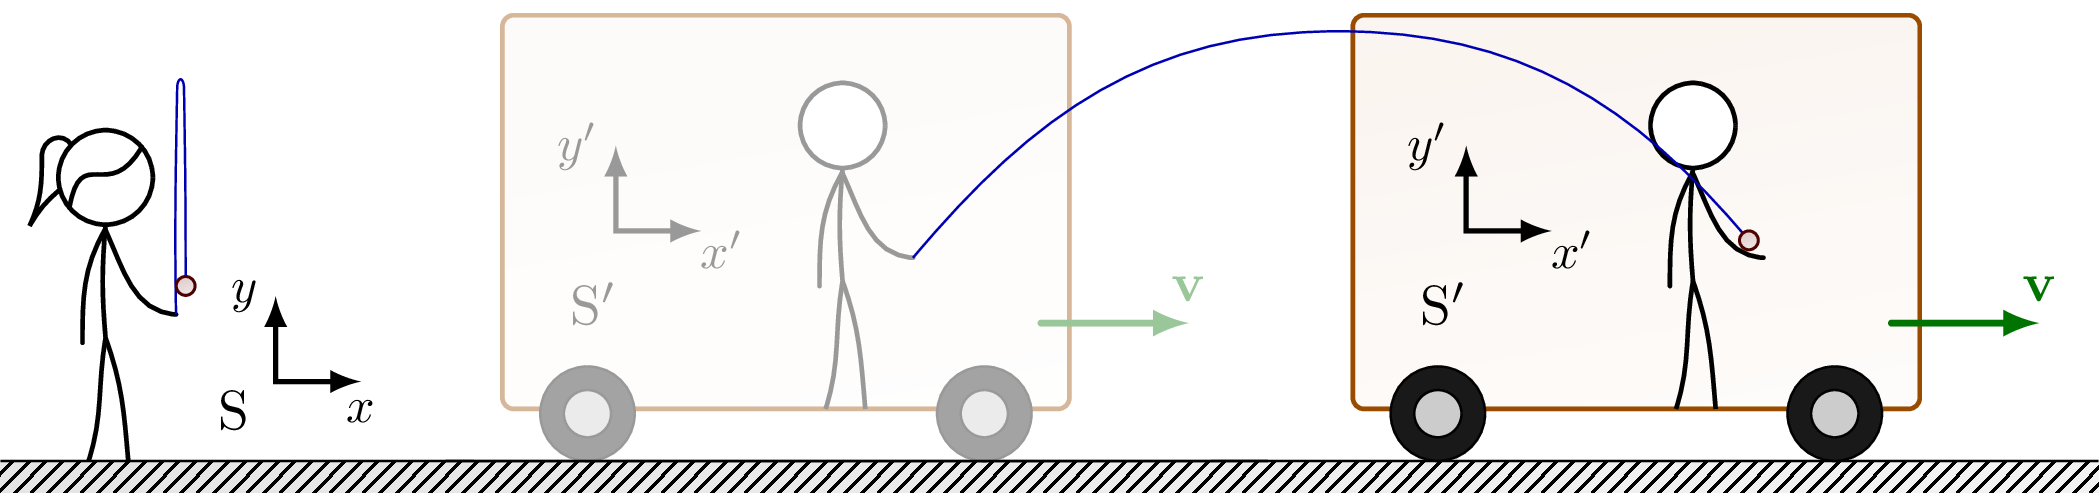 reference_frame_inertial